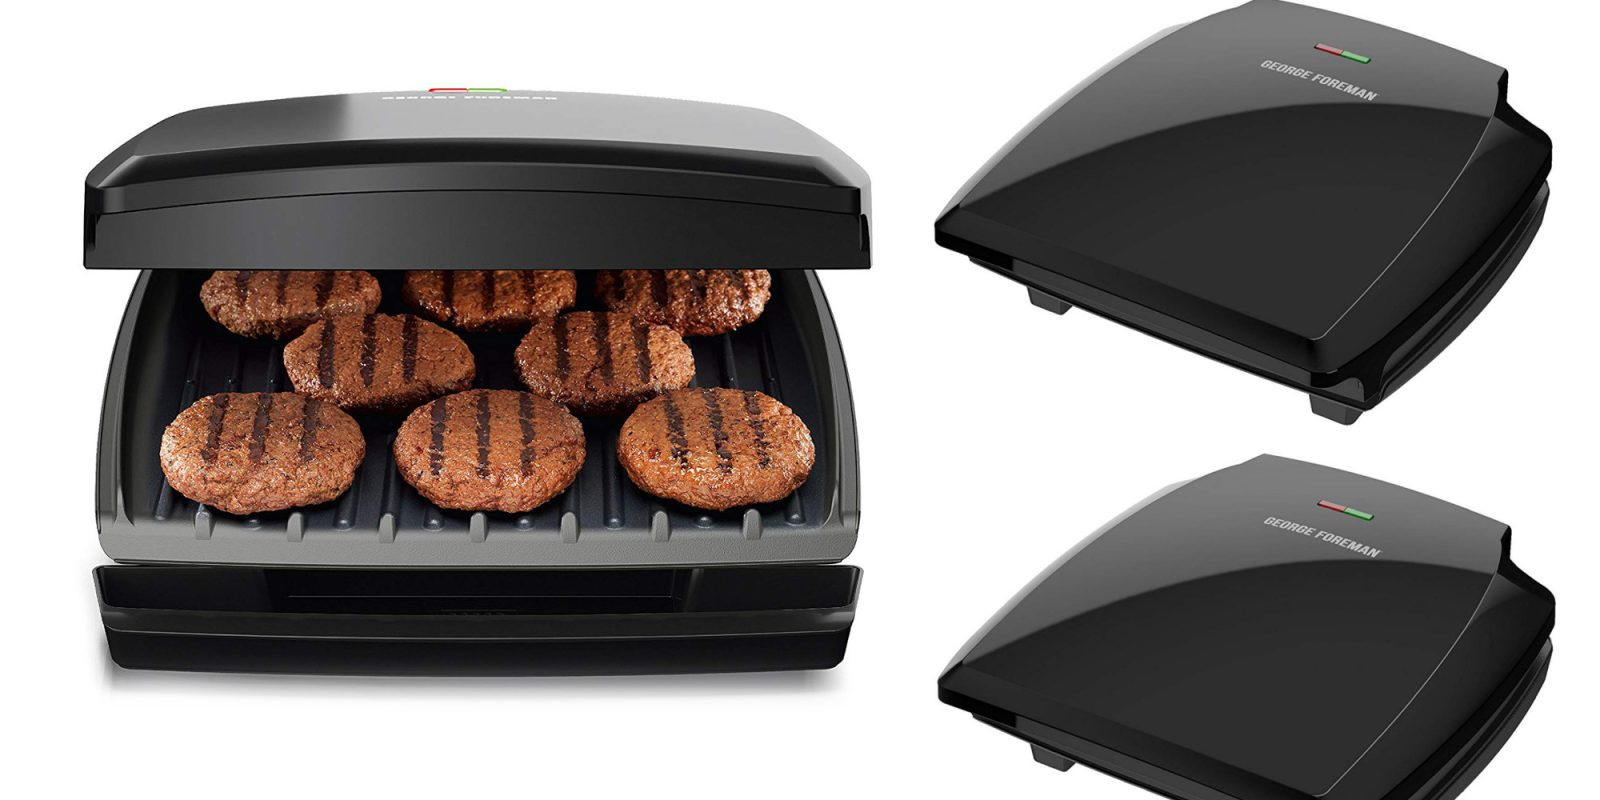 George Foreman's 8-serving Grill Press hits the Amazon low at $37 (Reg. $60)